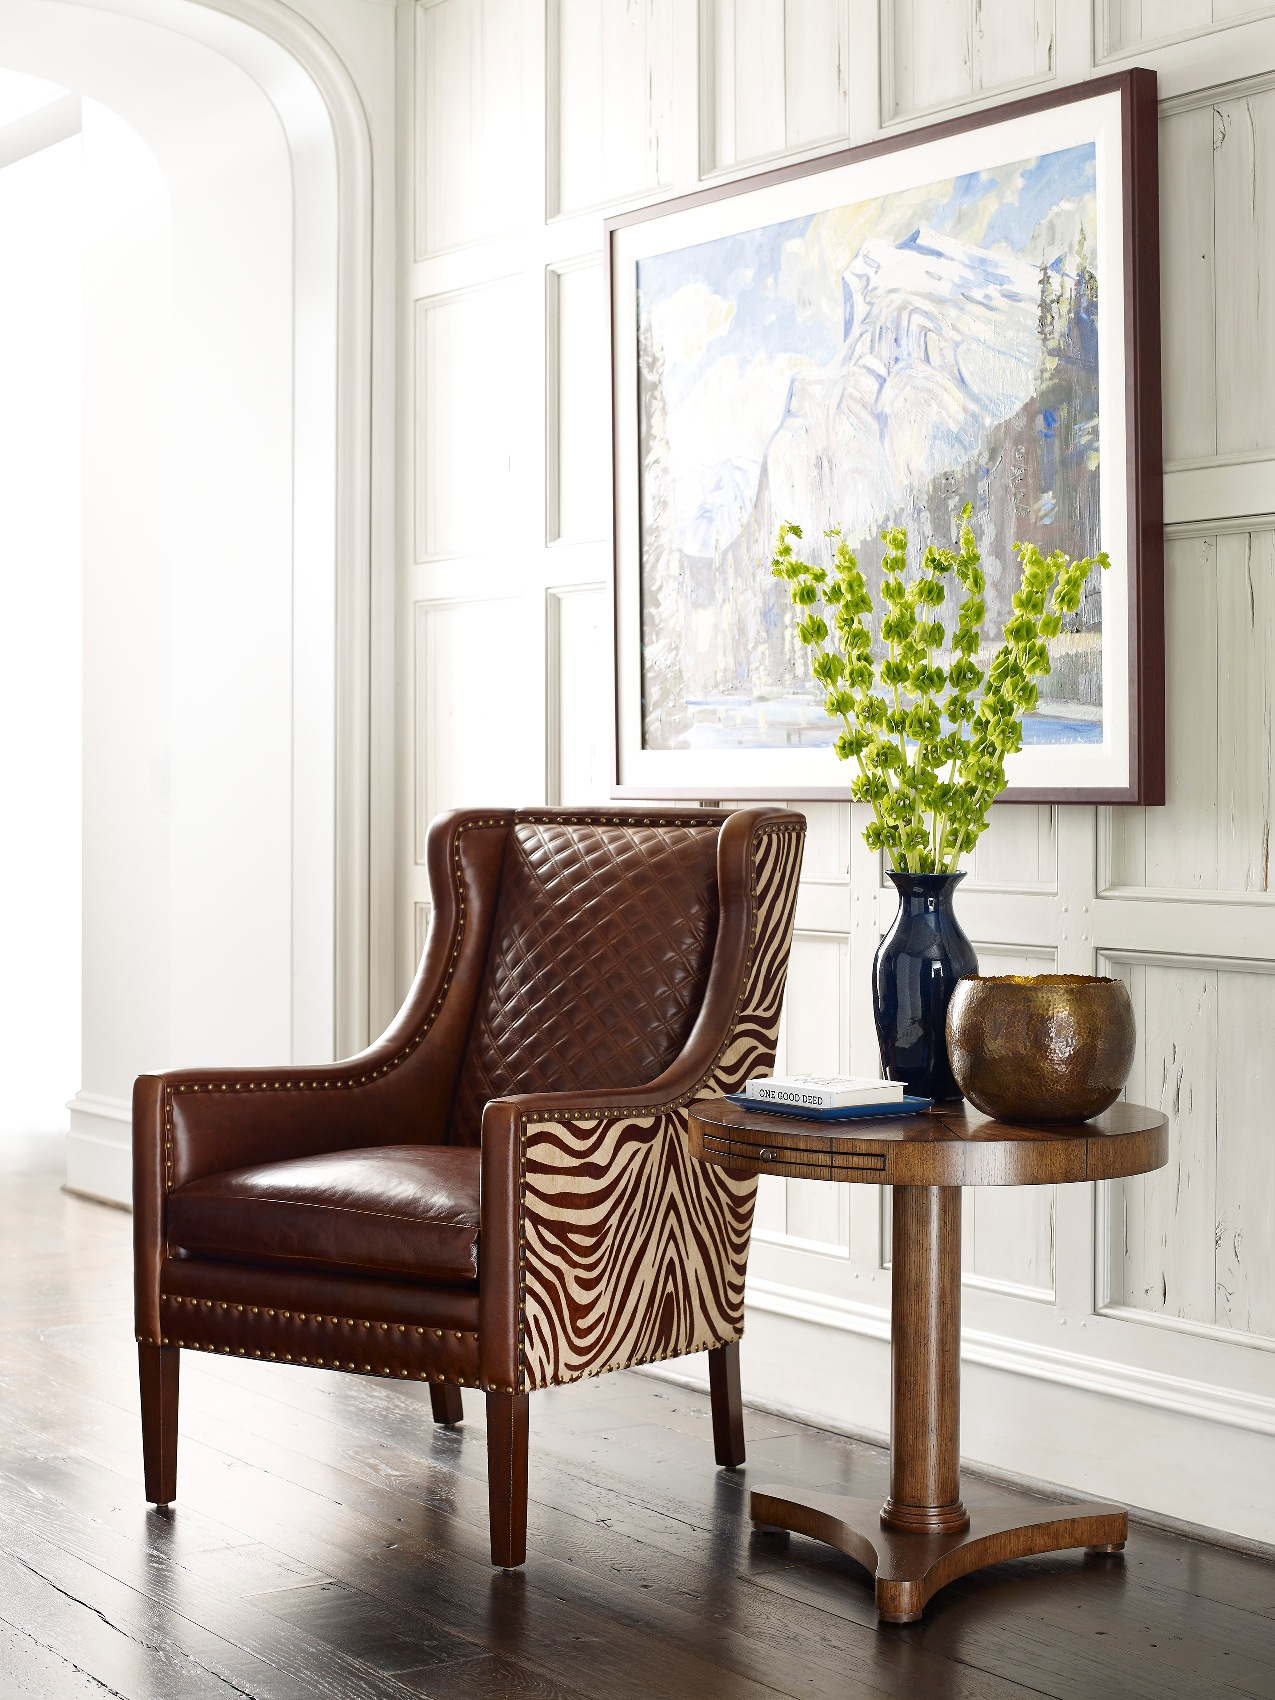 Hancock And Moore Leather Chair With Zebra Print